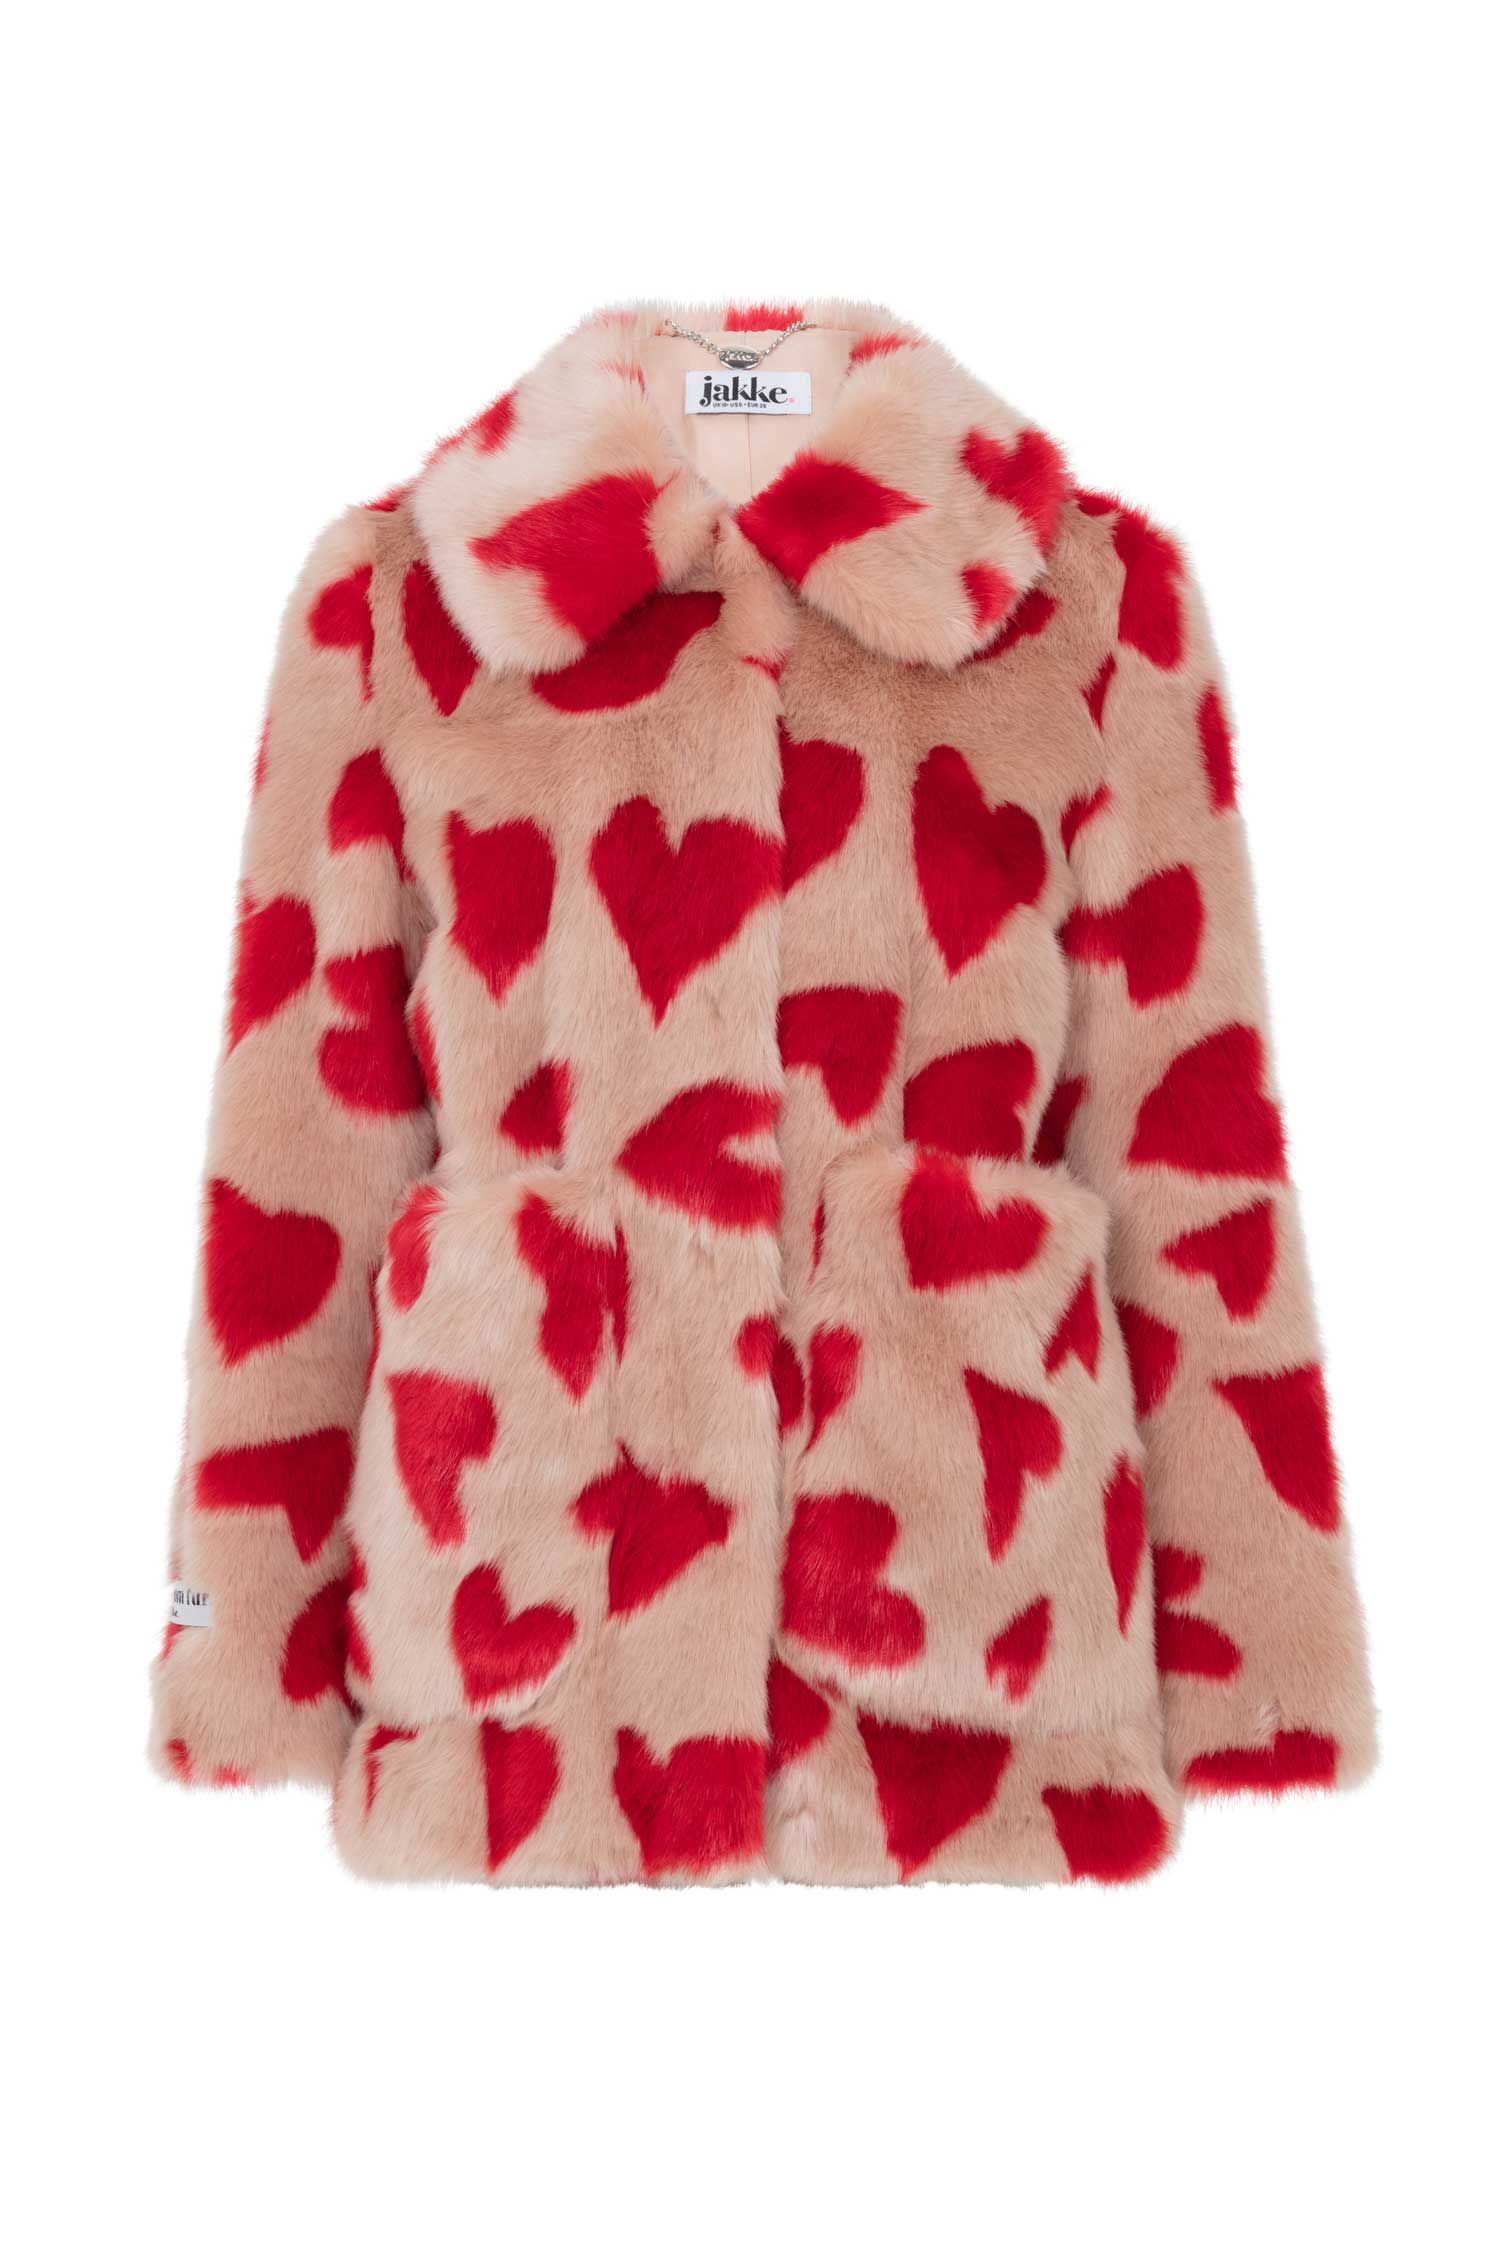 d3d2b964 TAMMY – Hearts in 2019 | Want | Faux fur jacket, Red faux fur coat ...